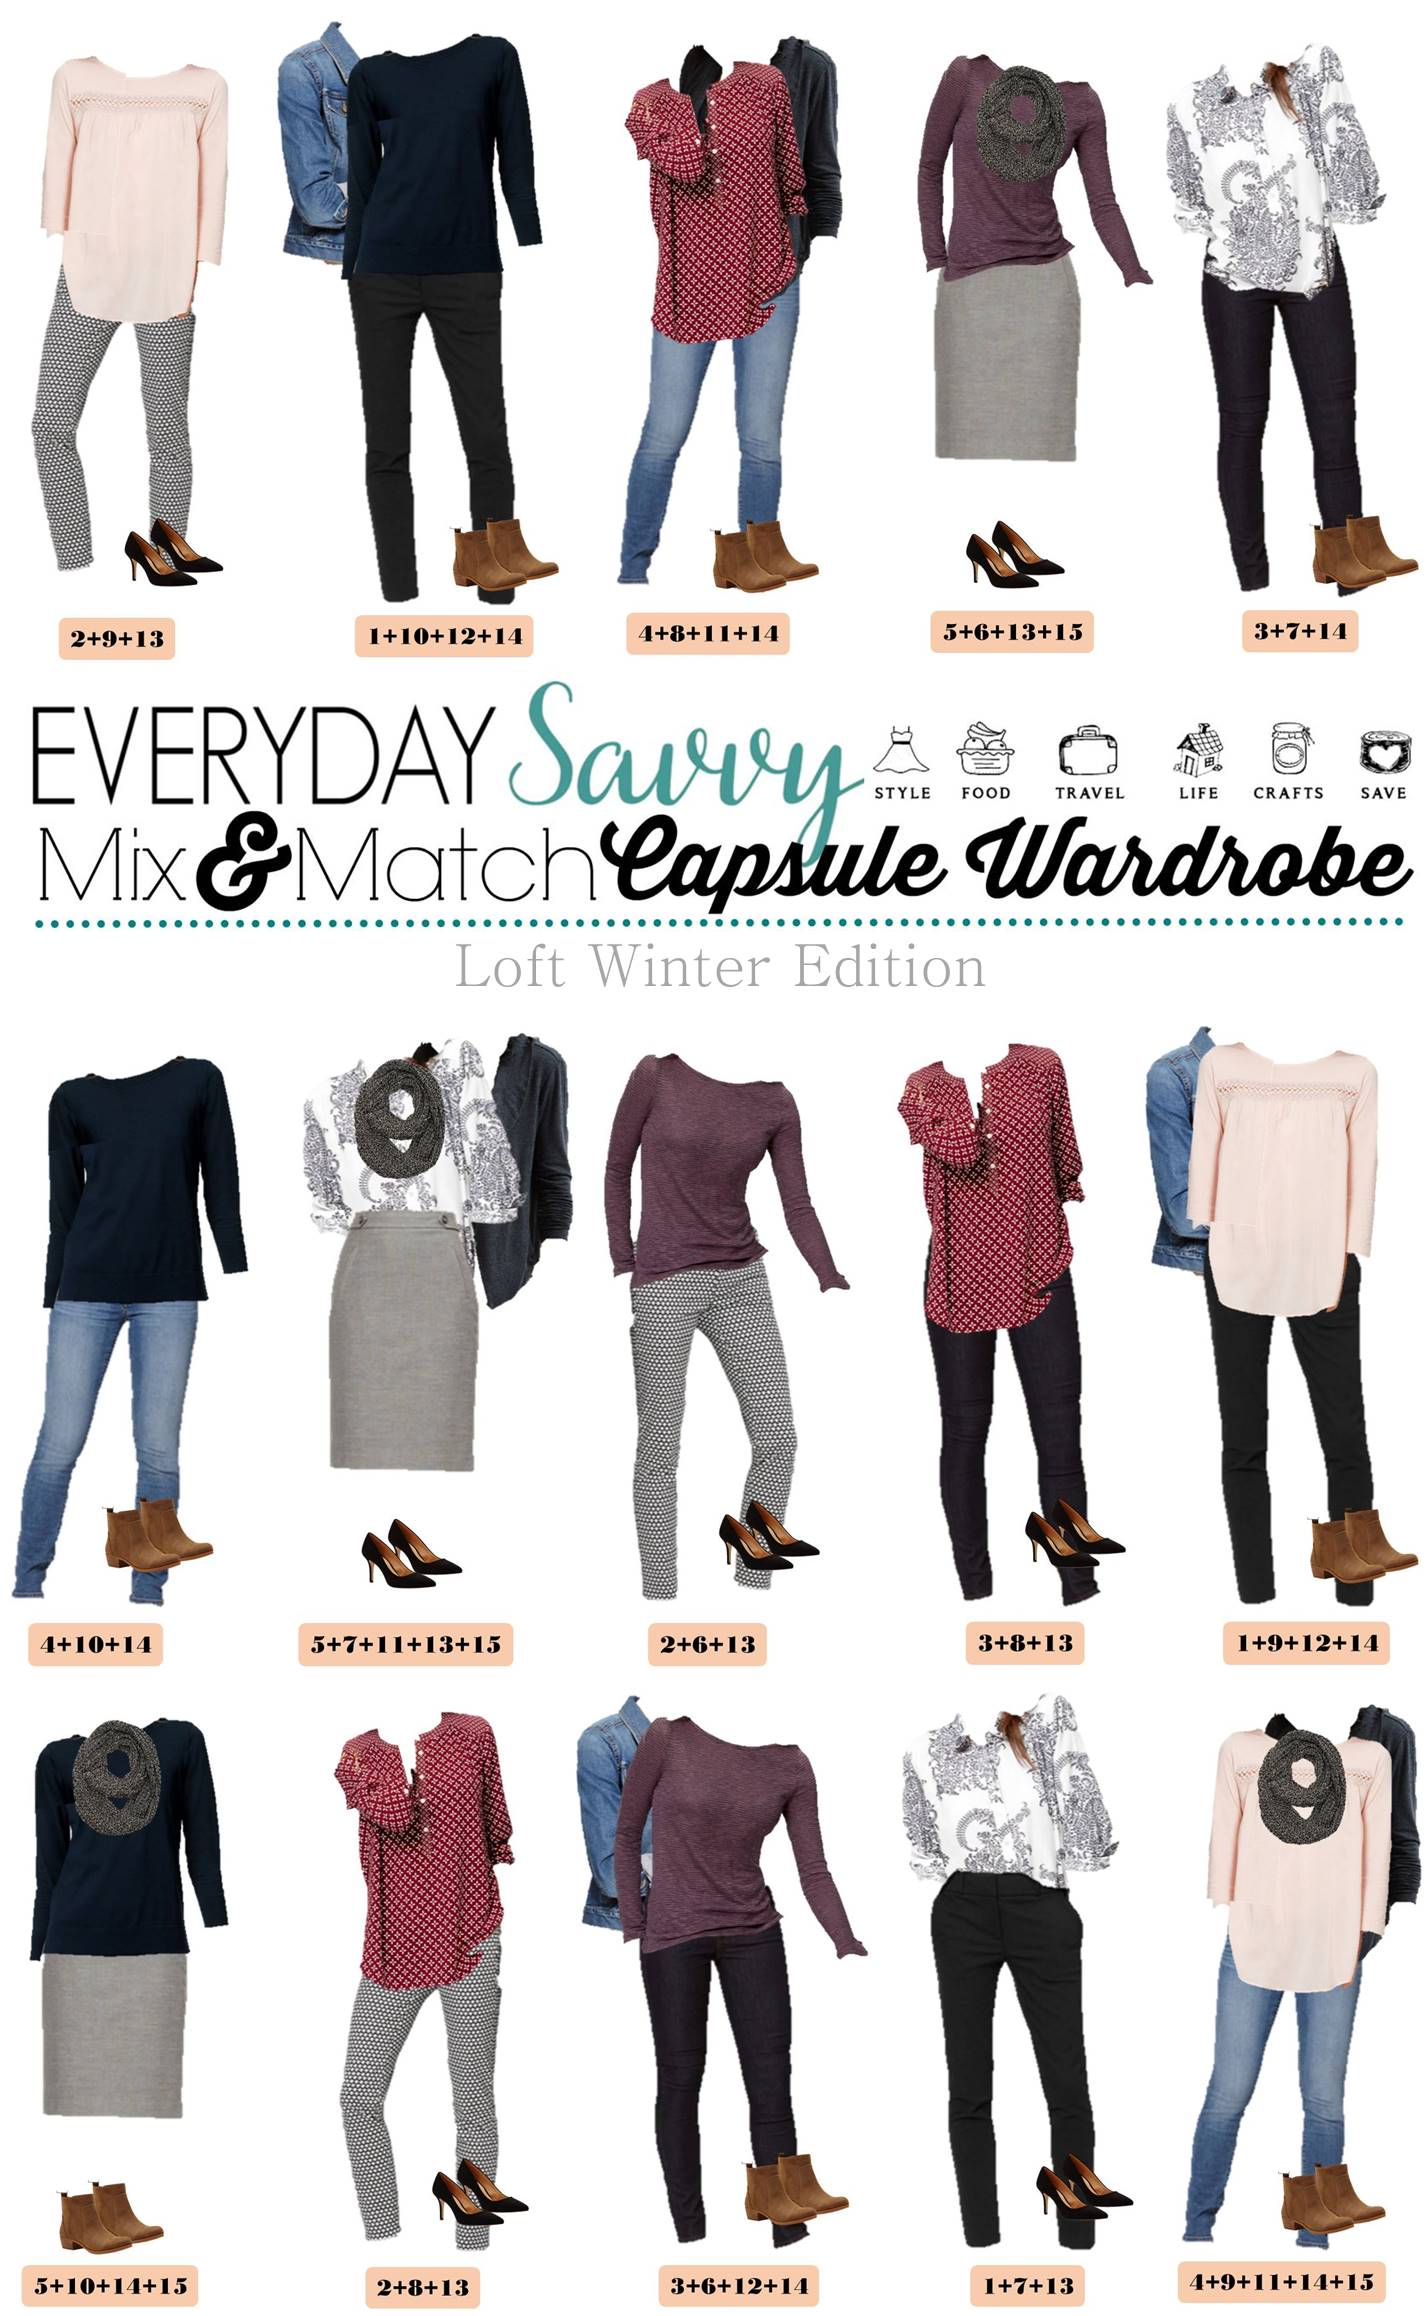 Winter Capsule Wardrobe For 2017 And 2018: Loft Winter Capsule Wardrobe Mix & Match Outfits